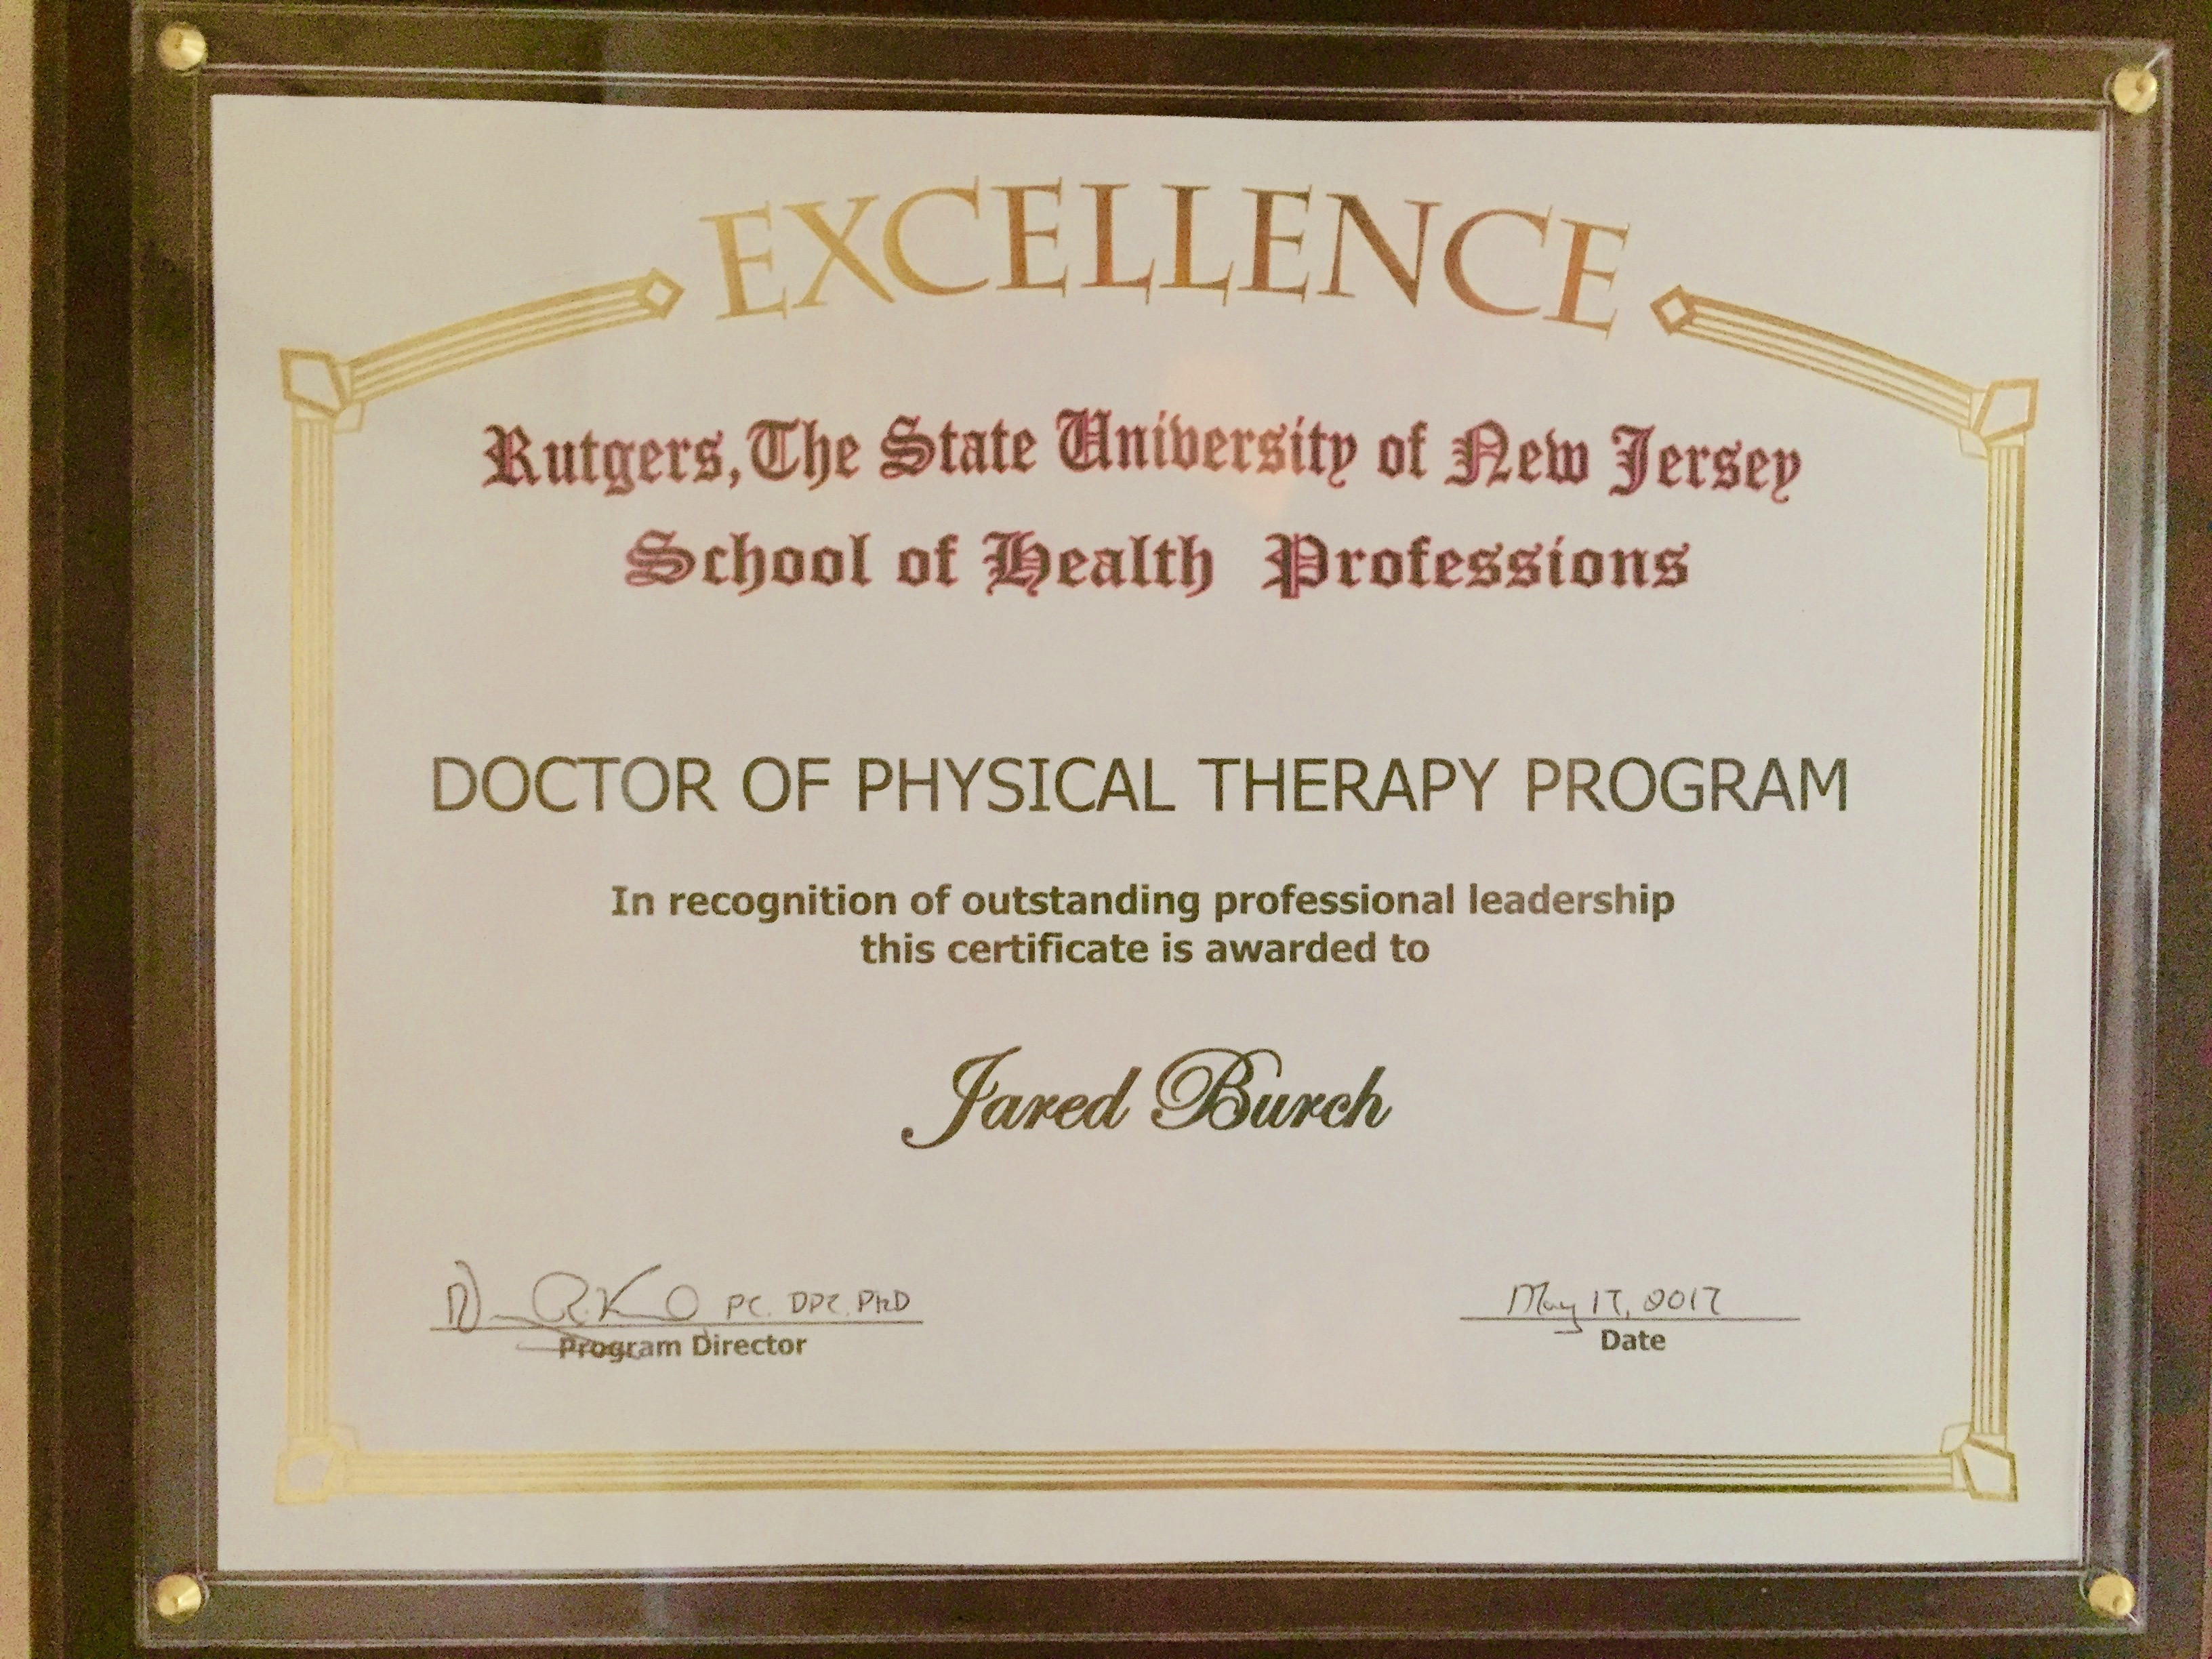 Doctor of physical therapy program - Professional Leadership